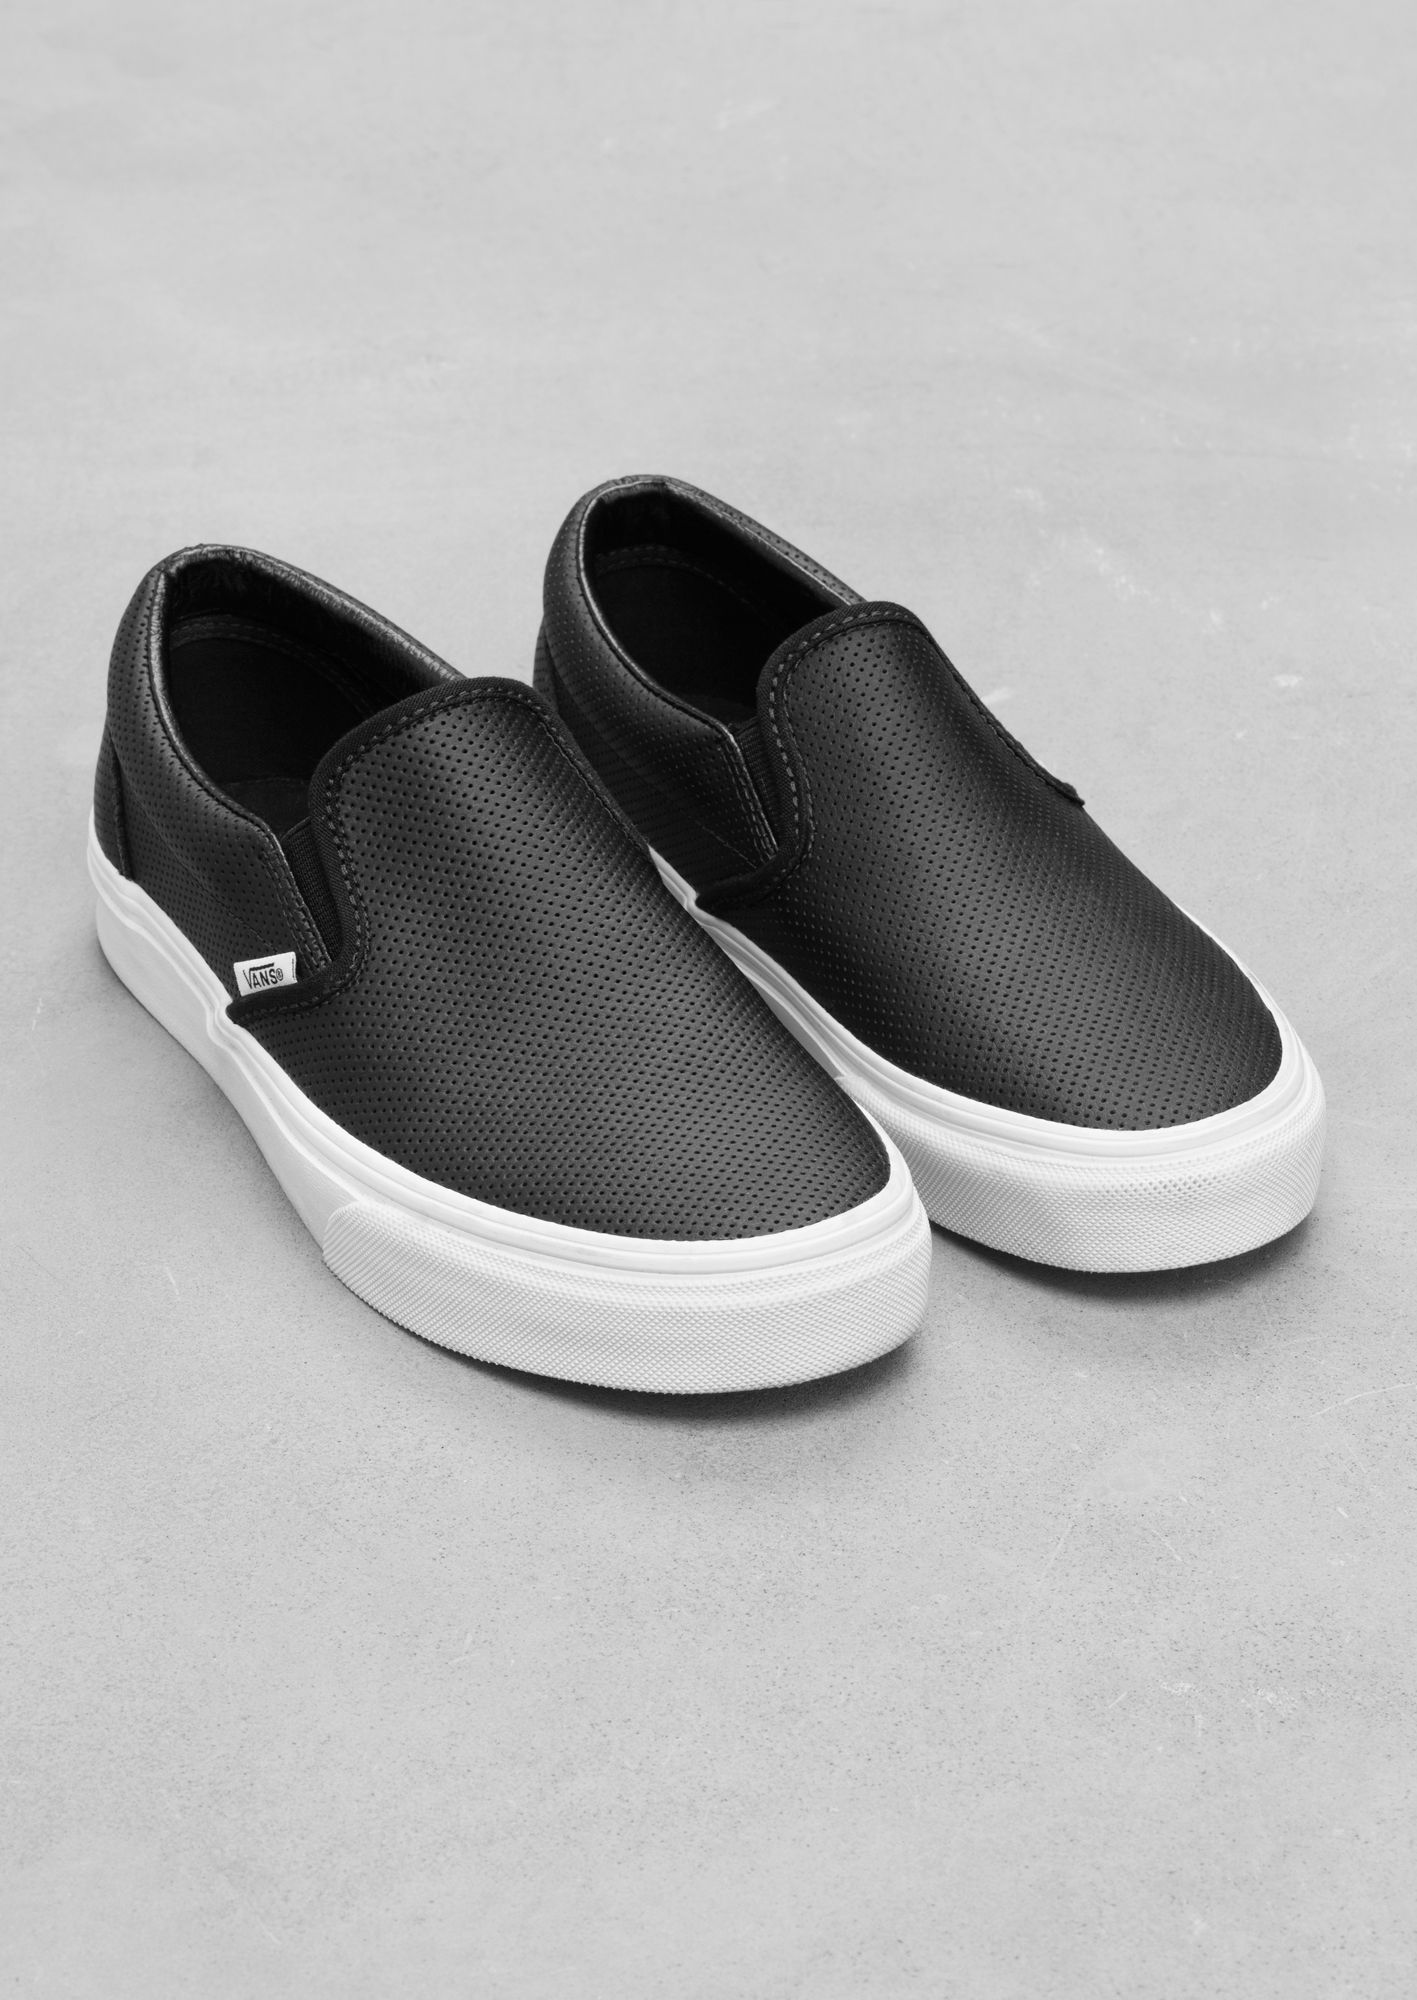 & Other Stories | Vans Classic Slip On Leather. Featuring a